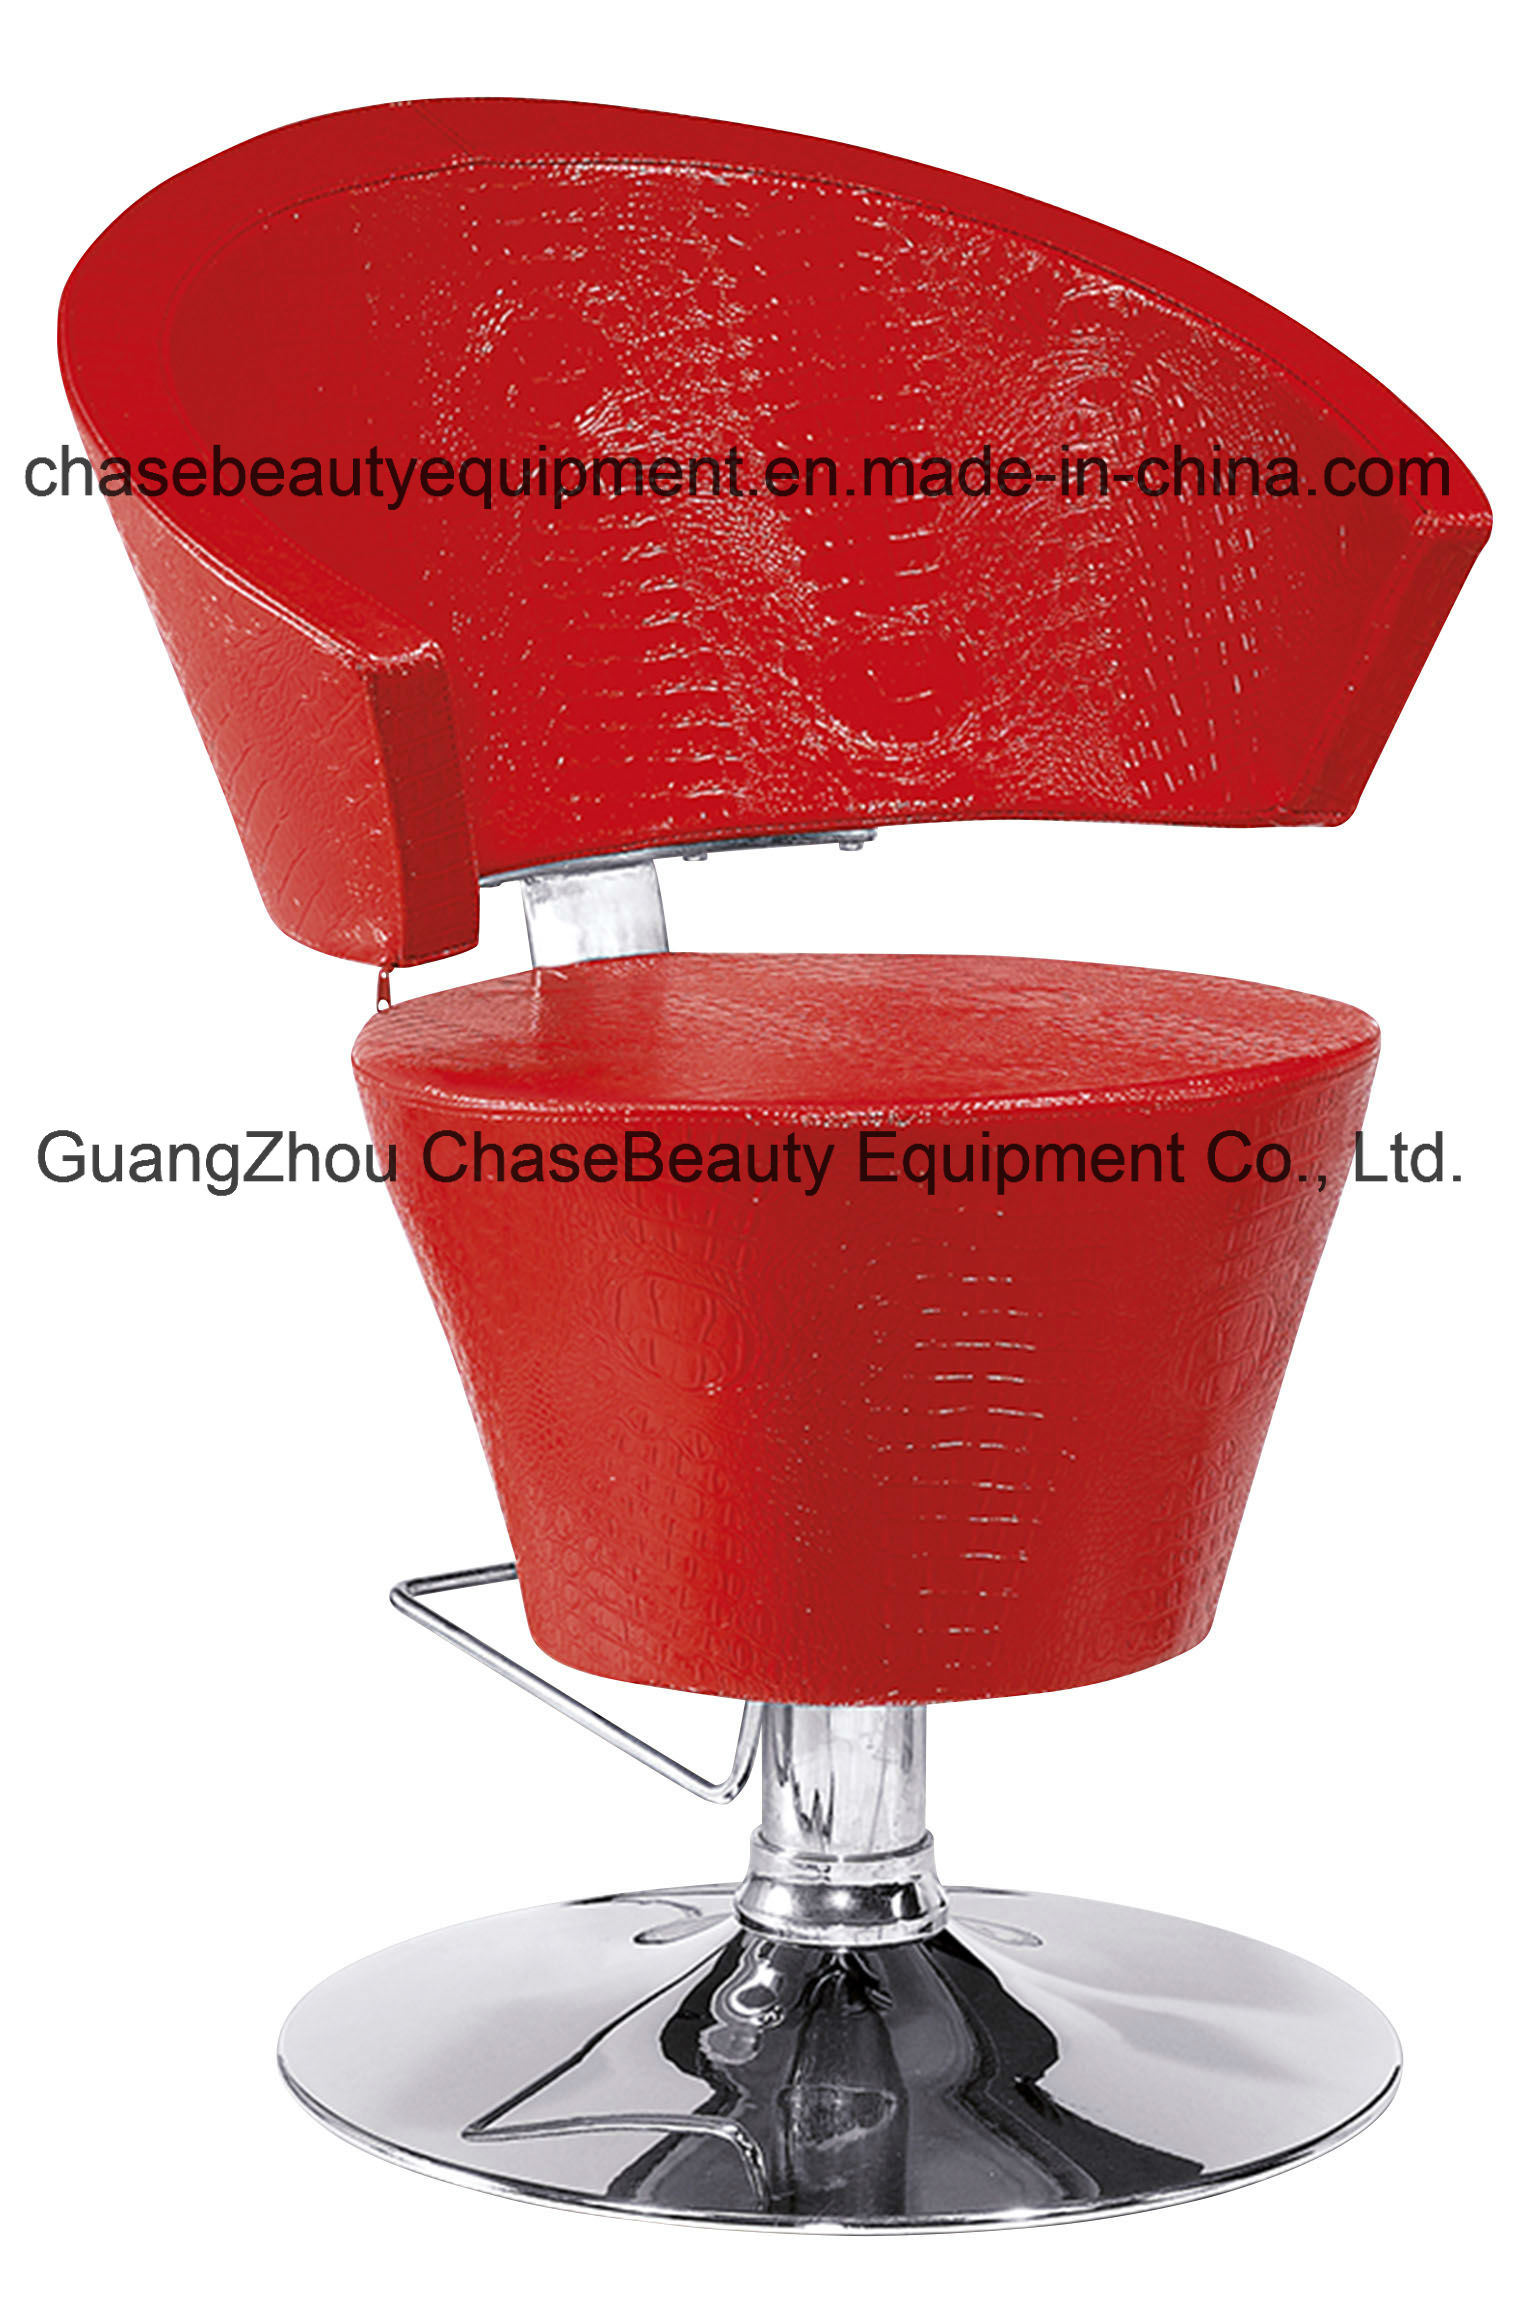 New Antique Style Salon Chair /Hair Beauty Salon Chair Furniture